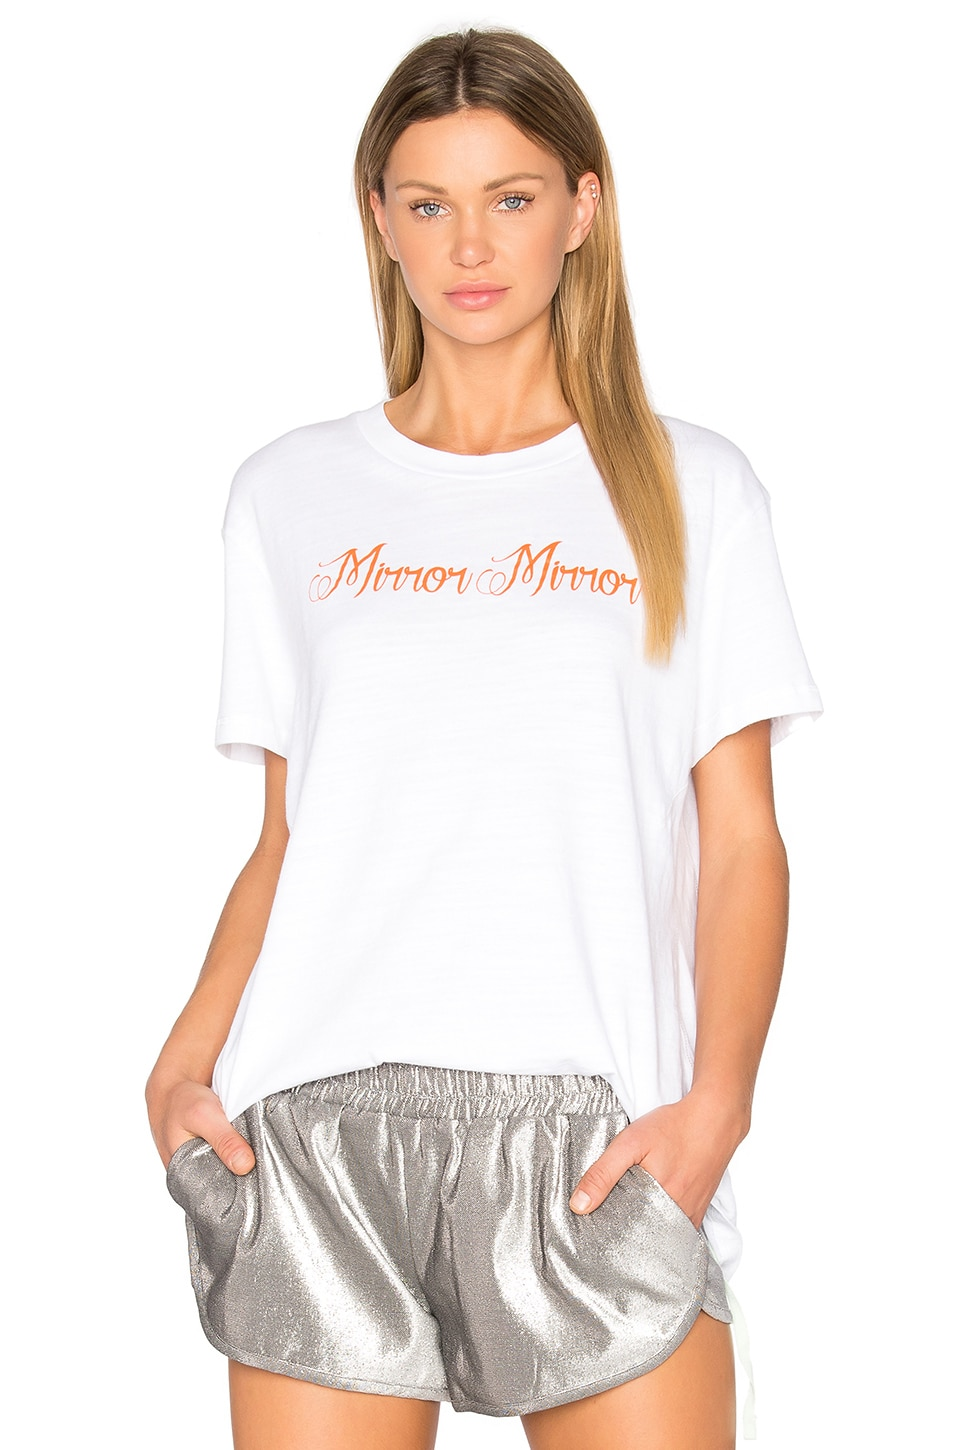 Mirror Mirror Tee by OFF-WHITE